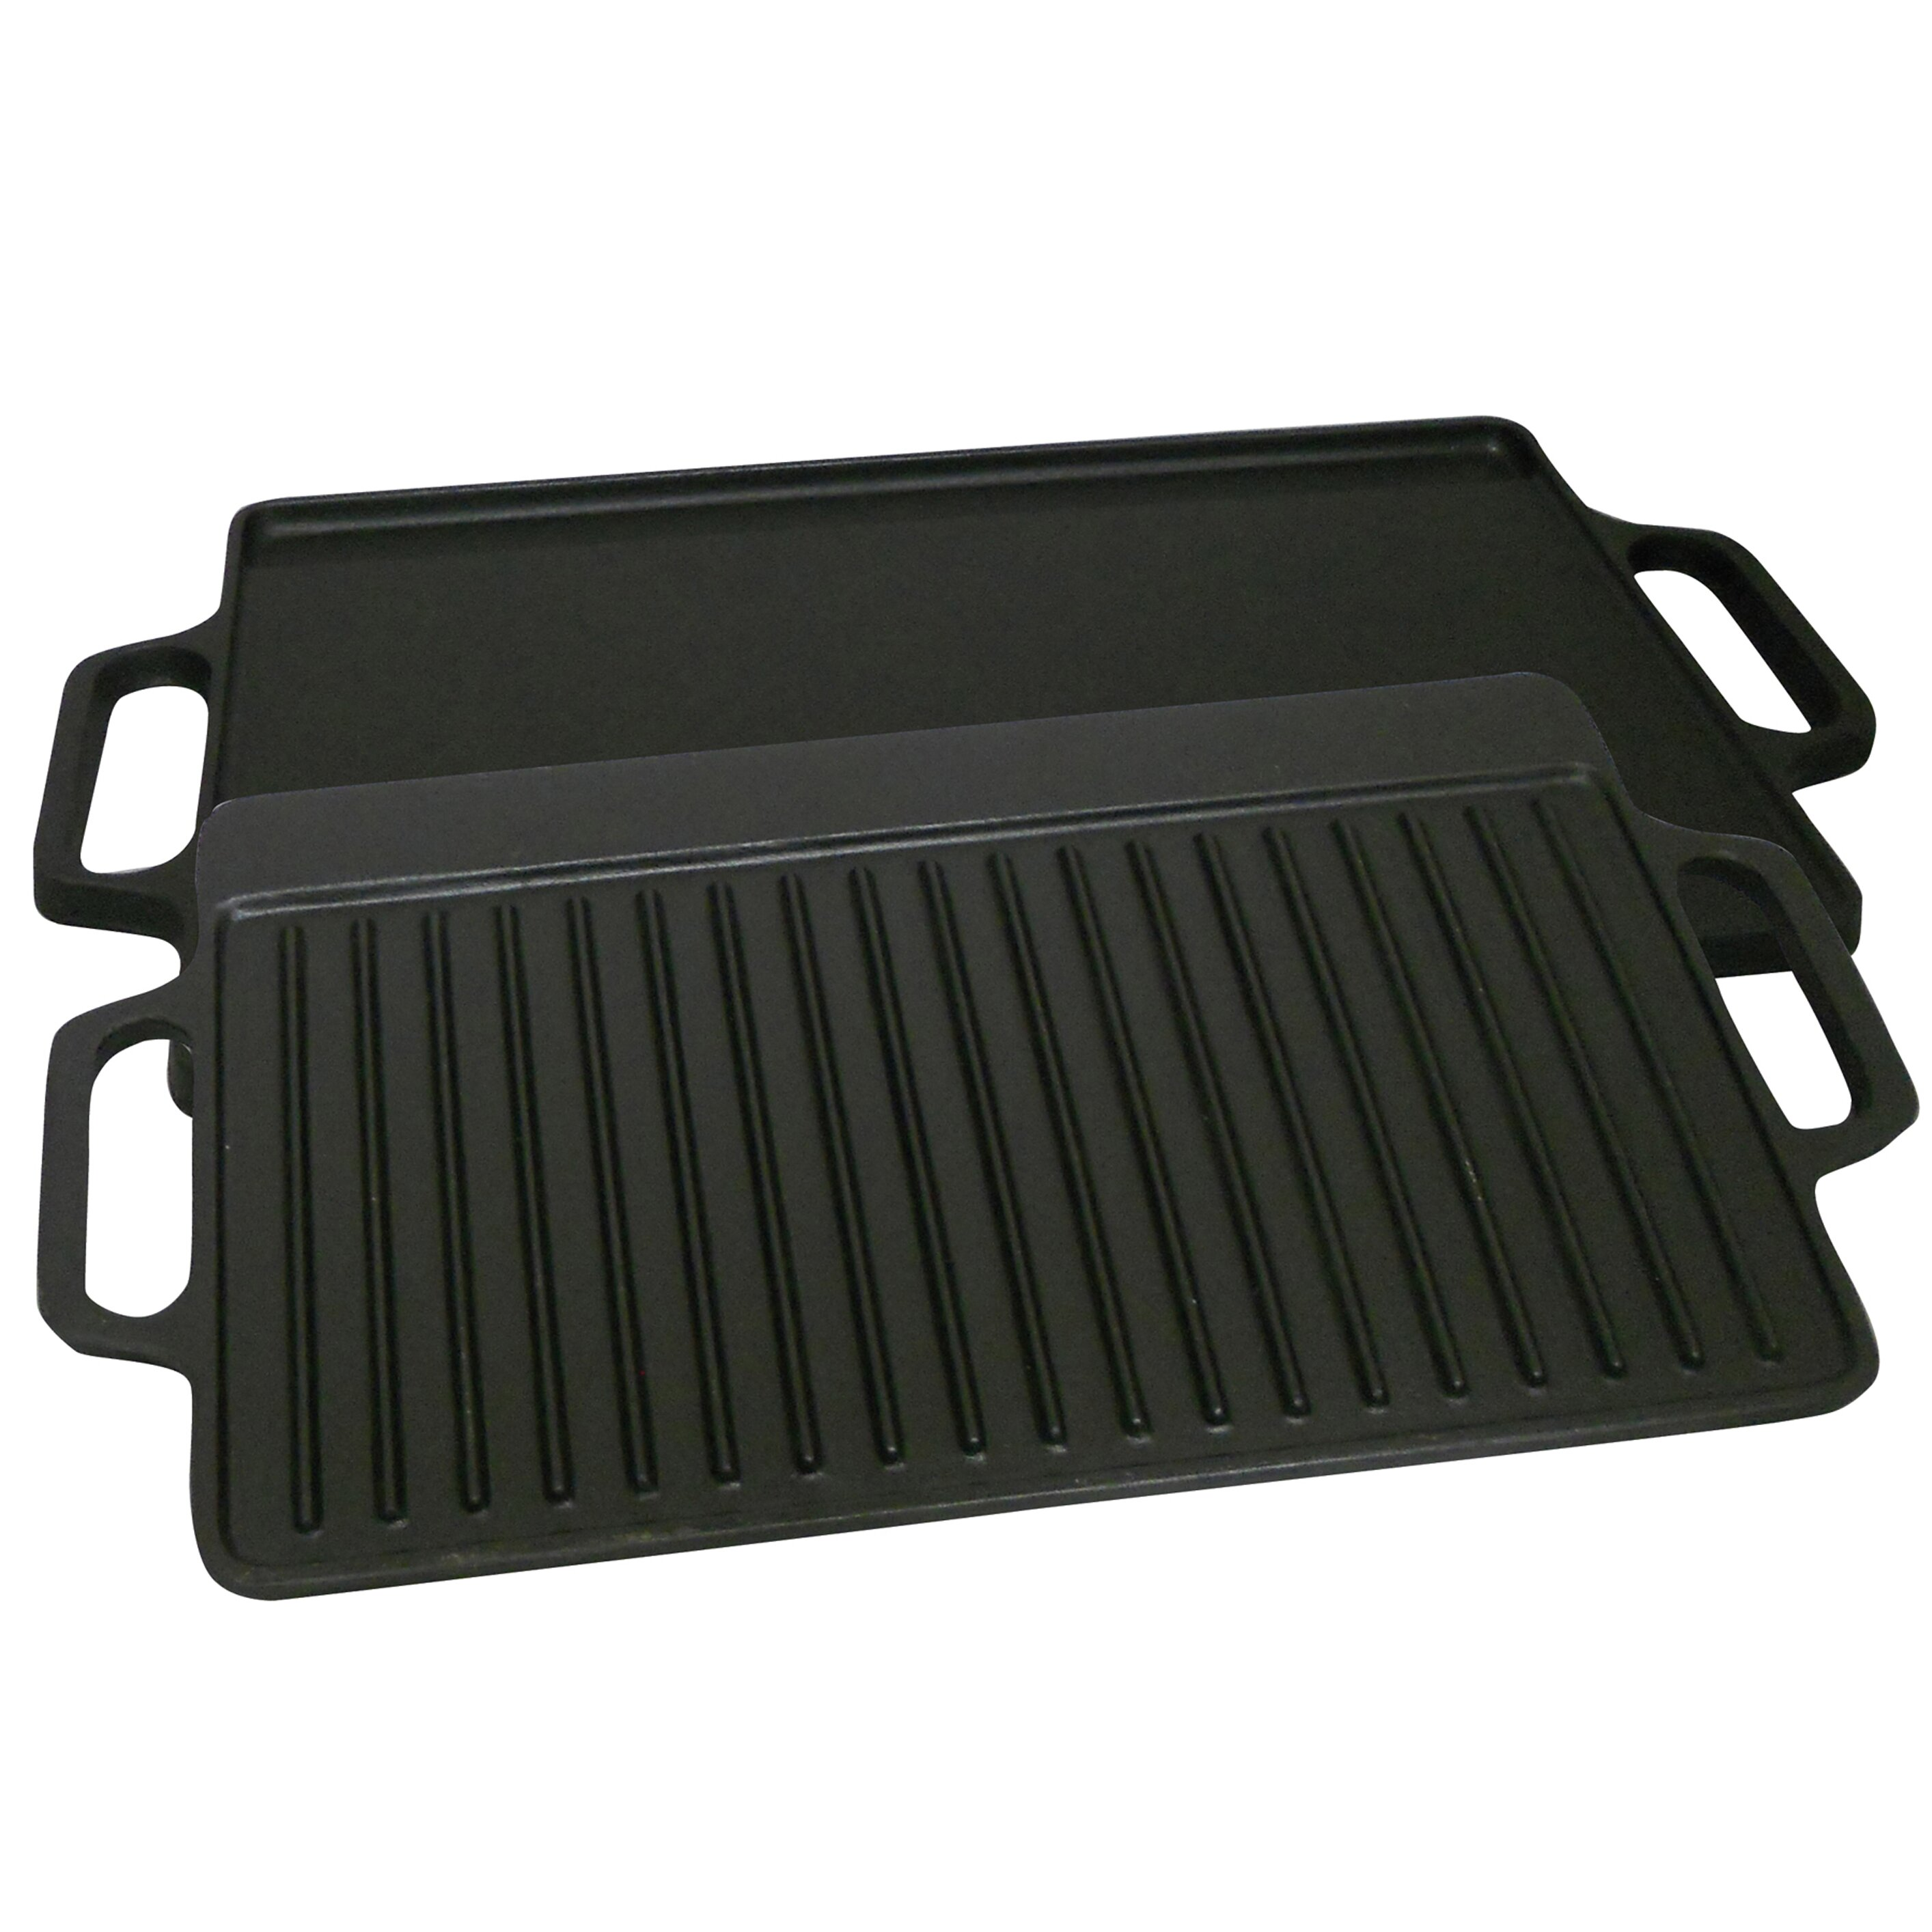 Twin Foam Mattress King Kooker Seasoned Non-Stick Reversible Griddle ...